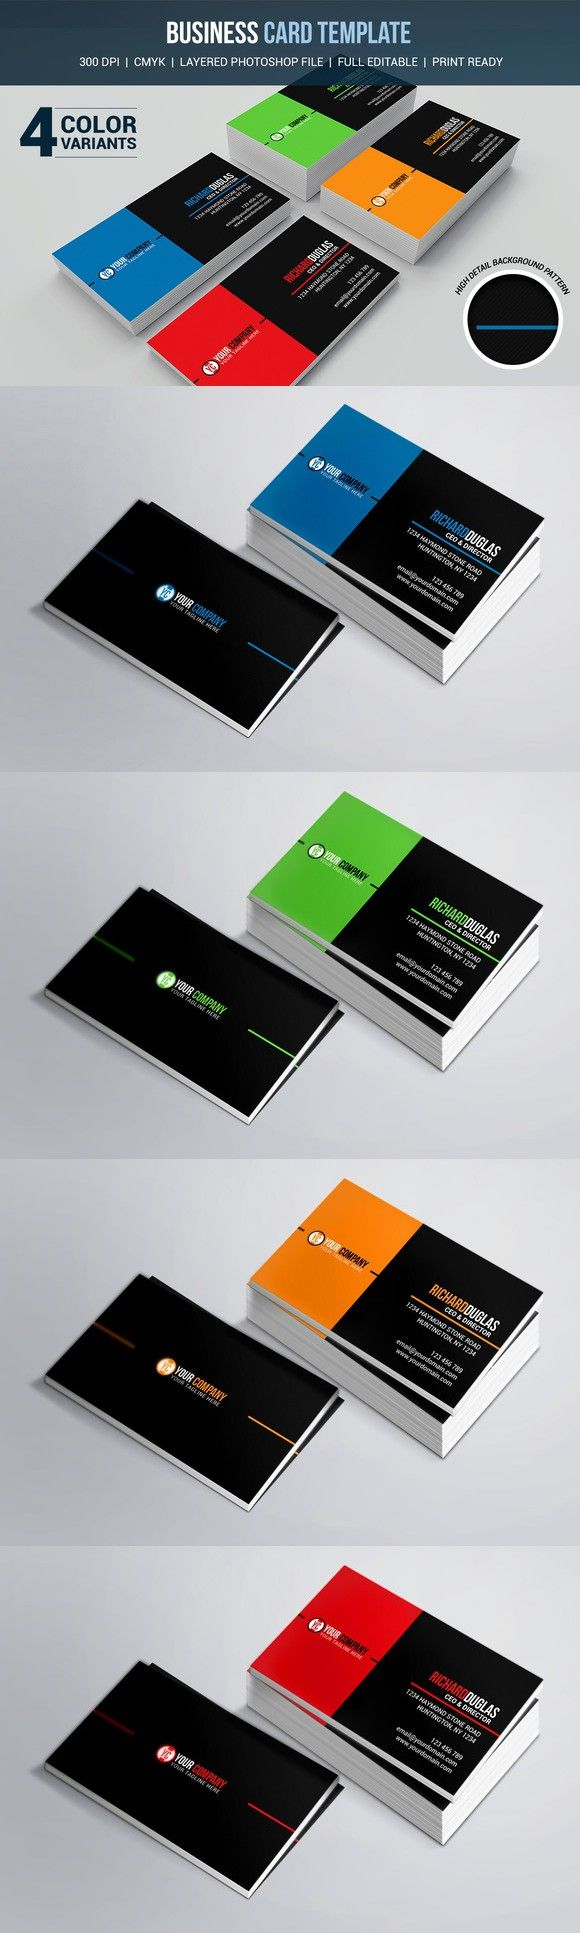 285 best Business Card Templates images on Pinterest | Plantillas ...